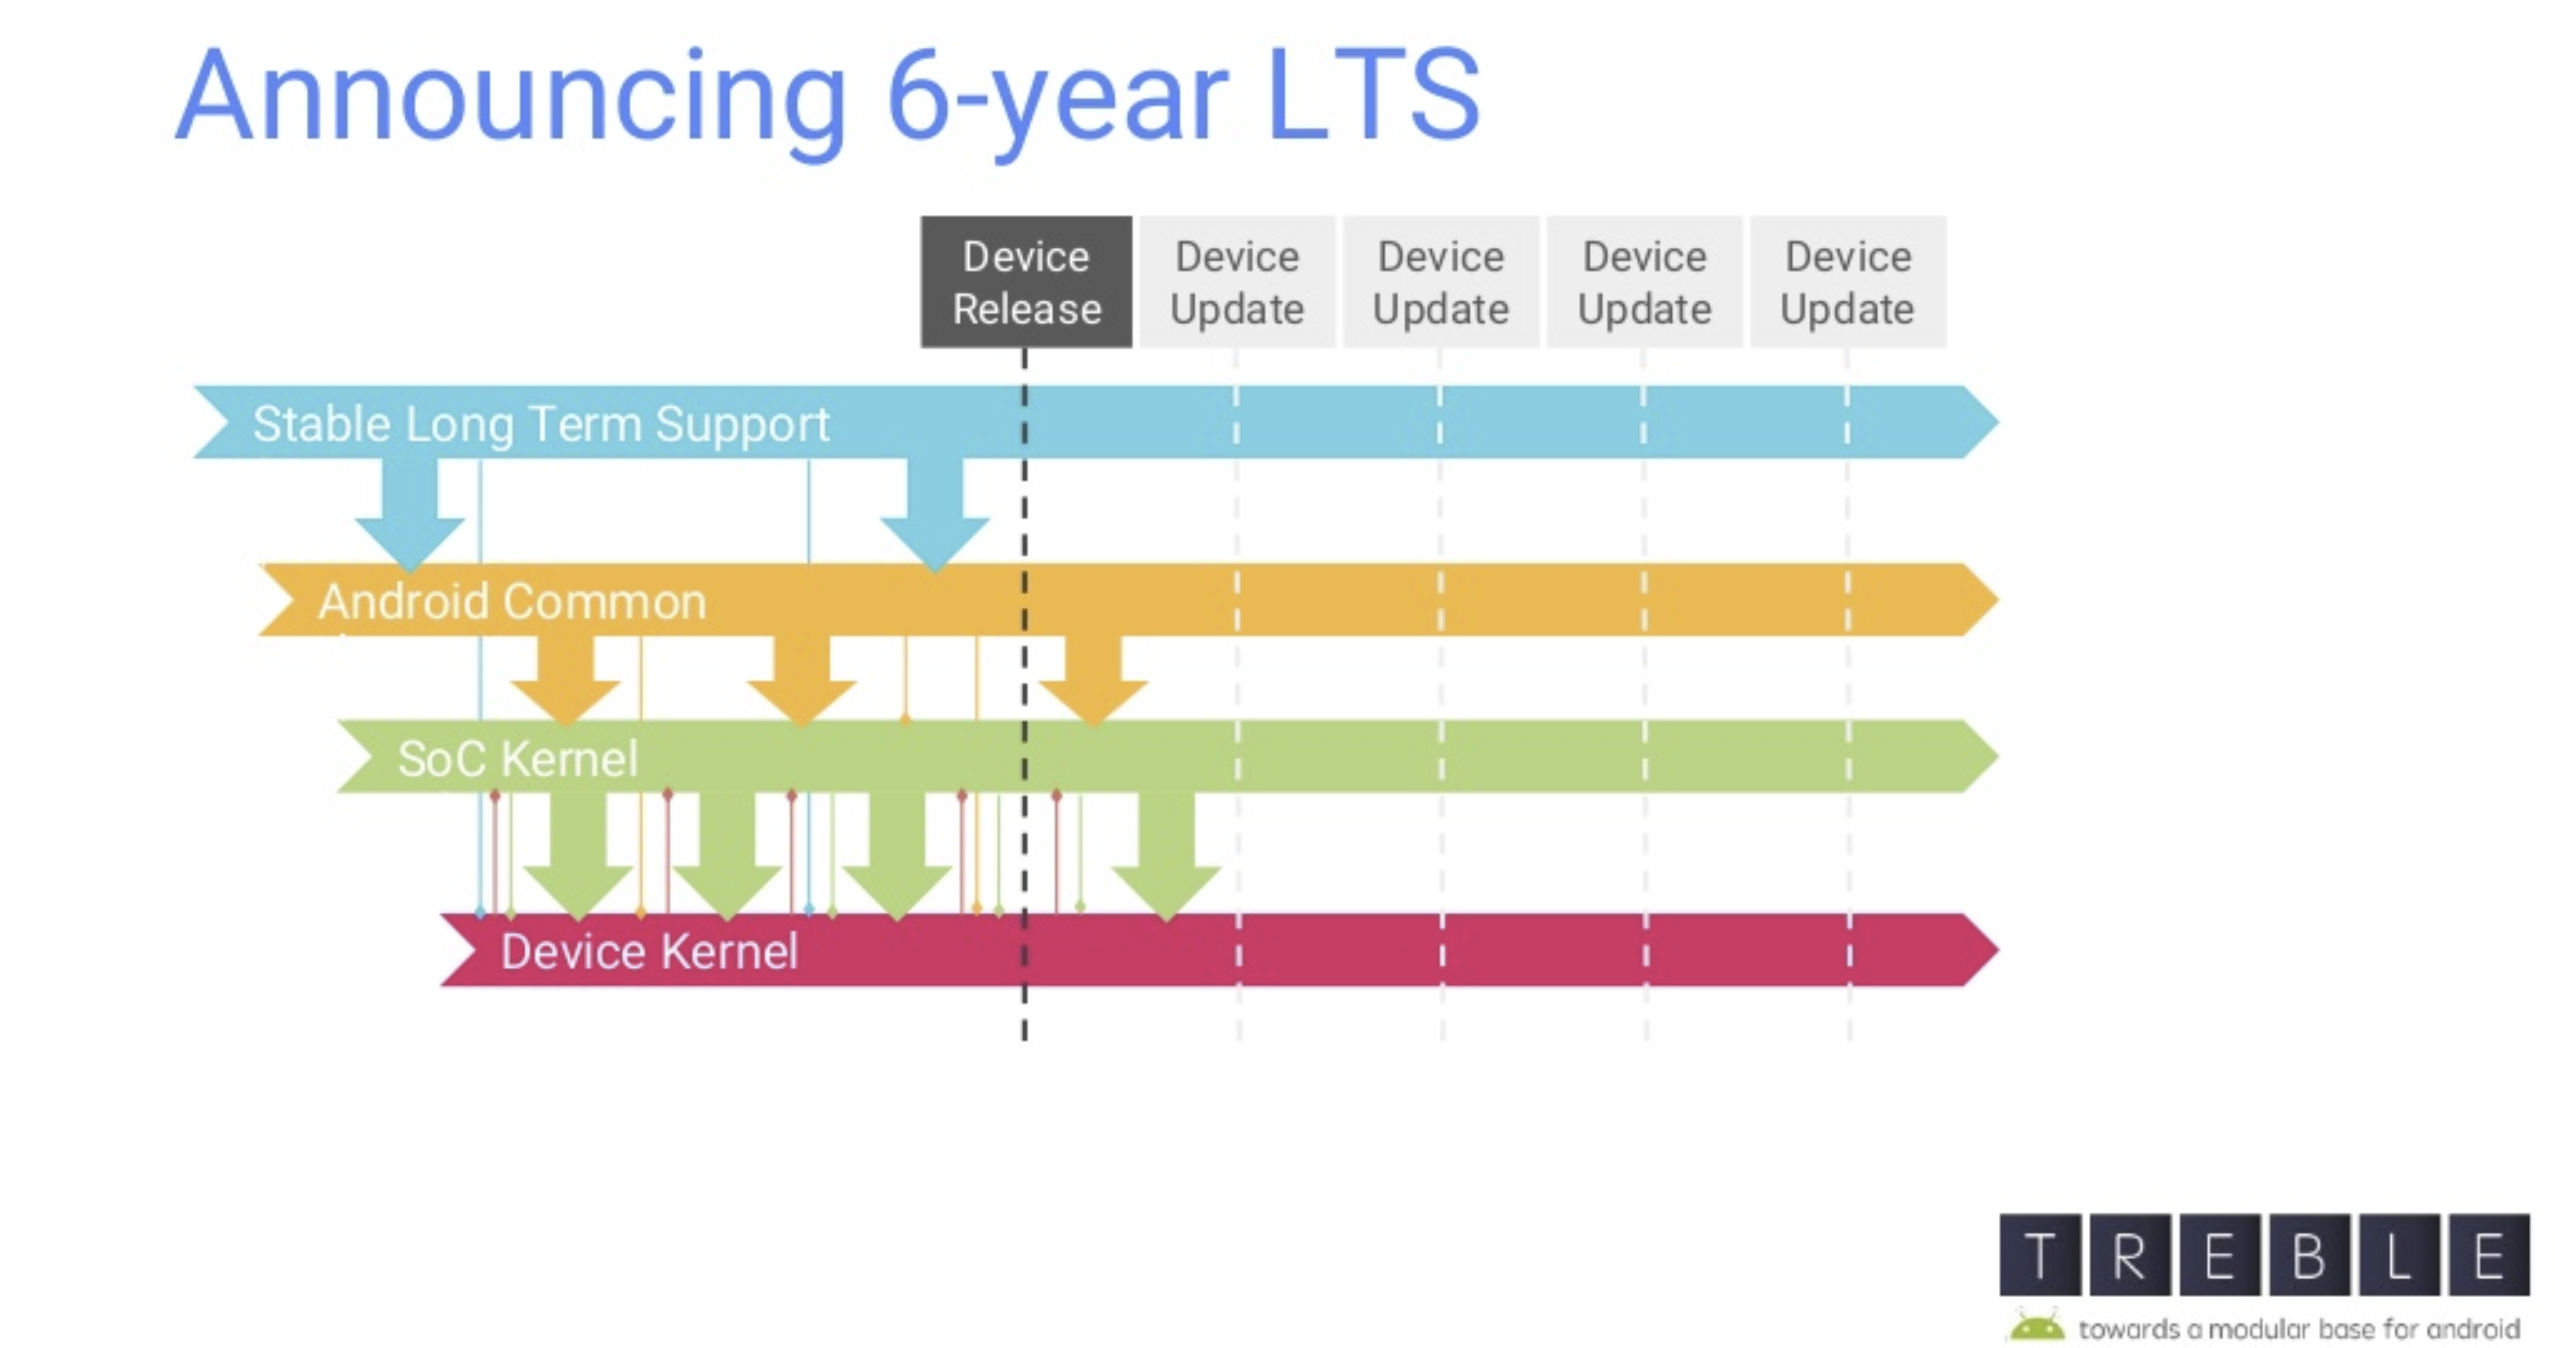 Linux kernel's long-term support releases now last for 6